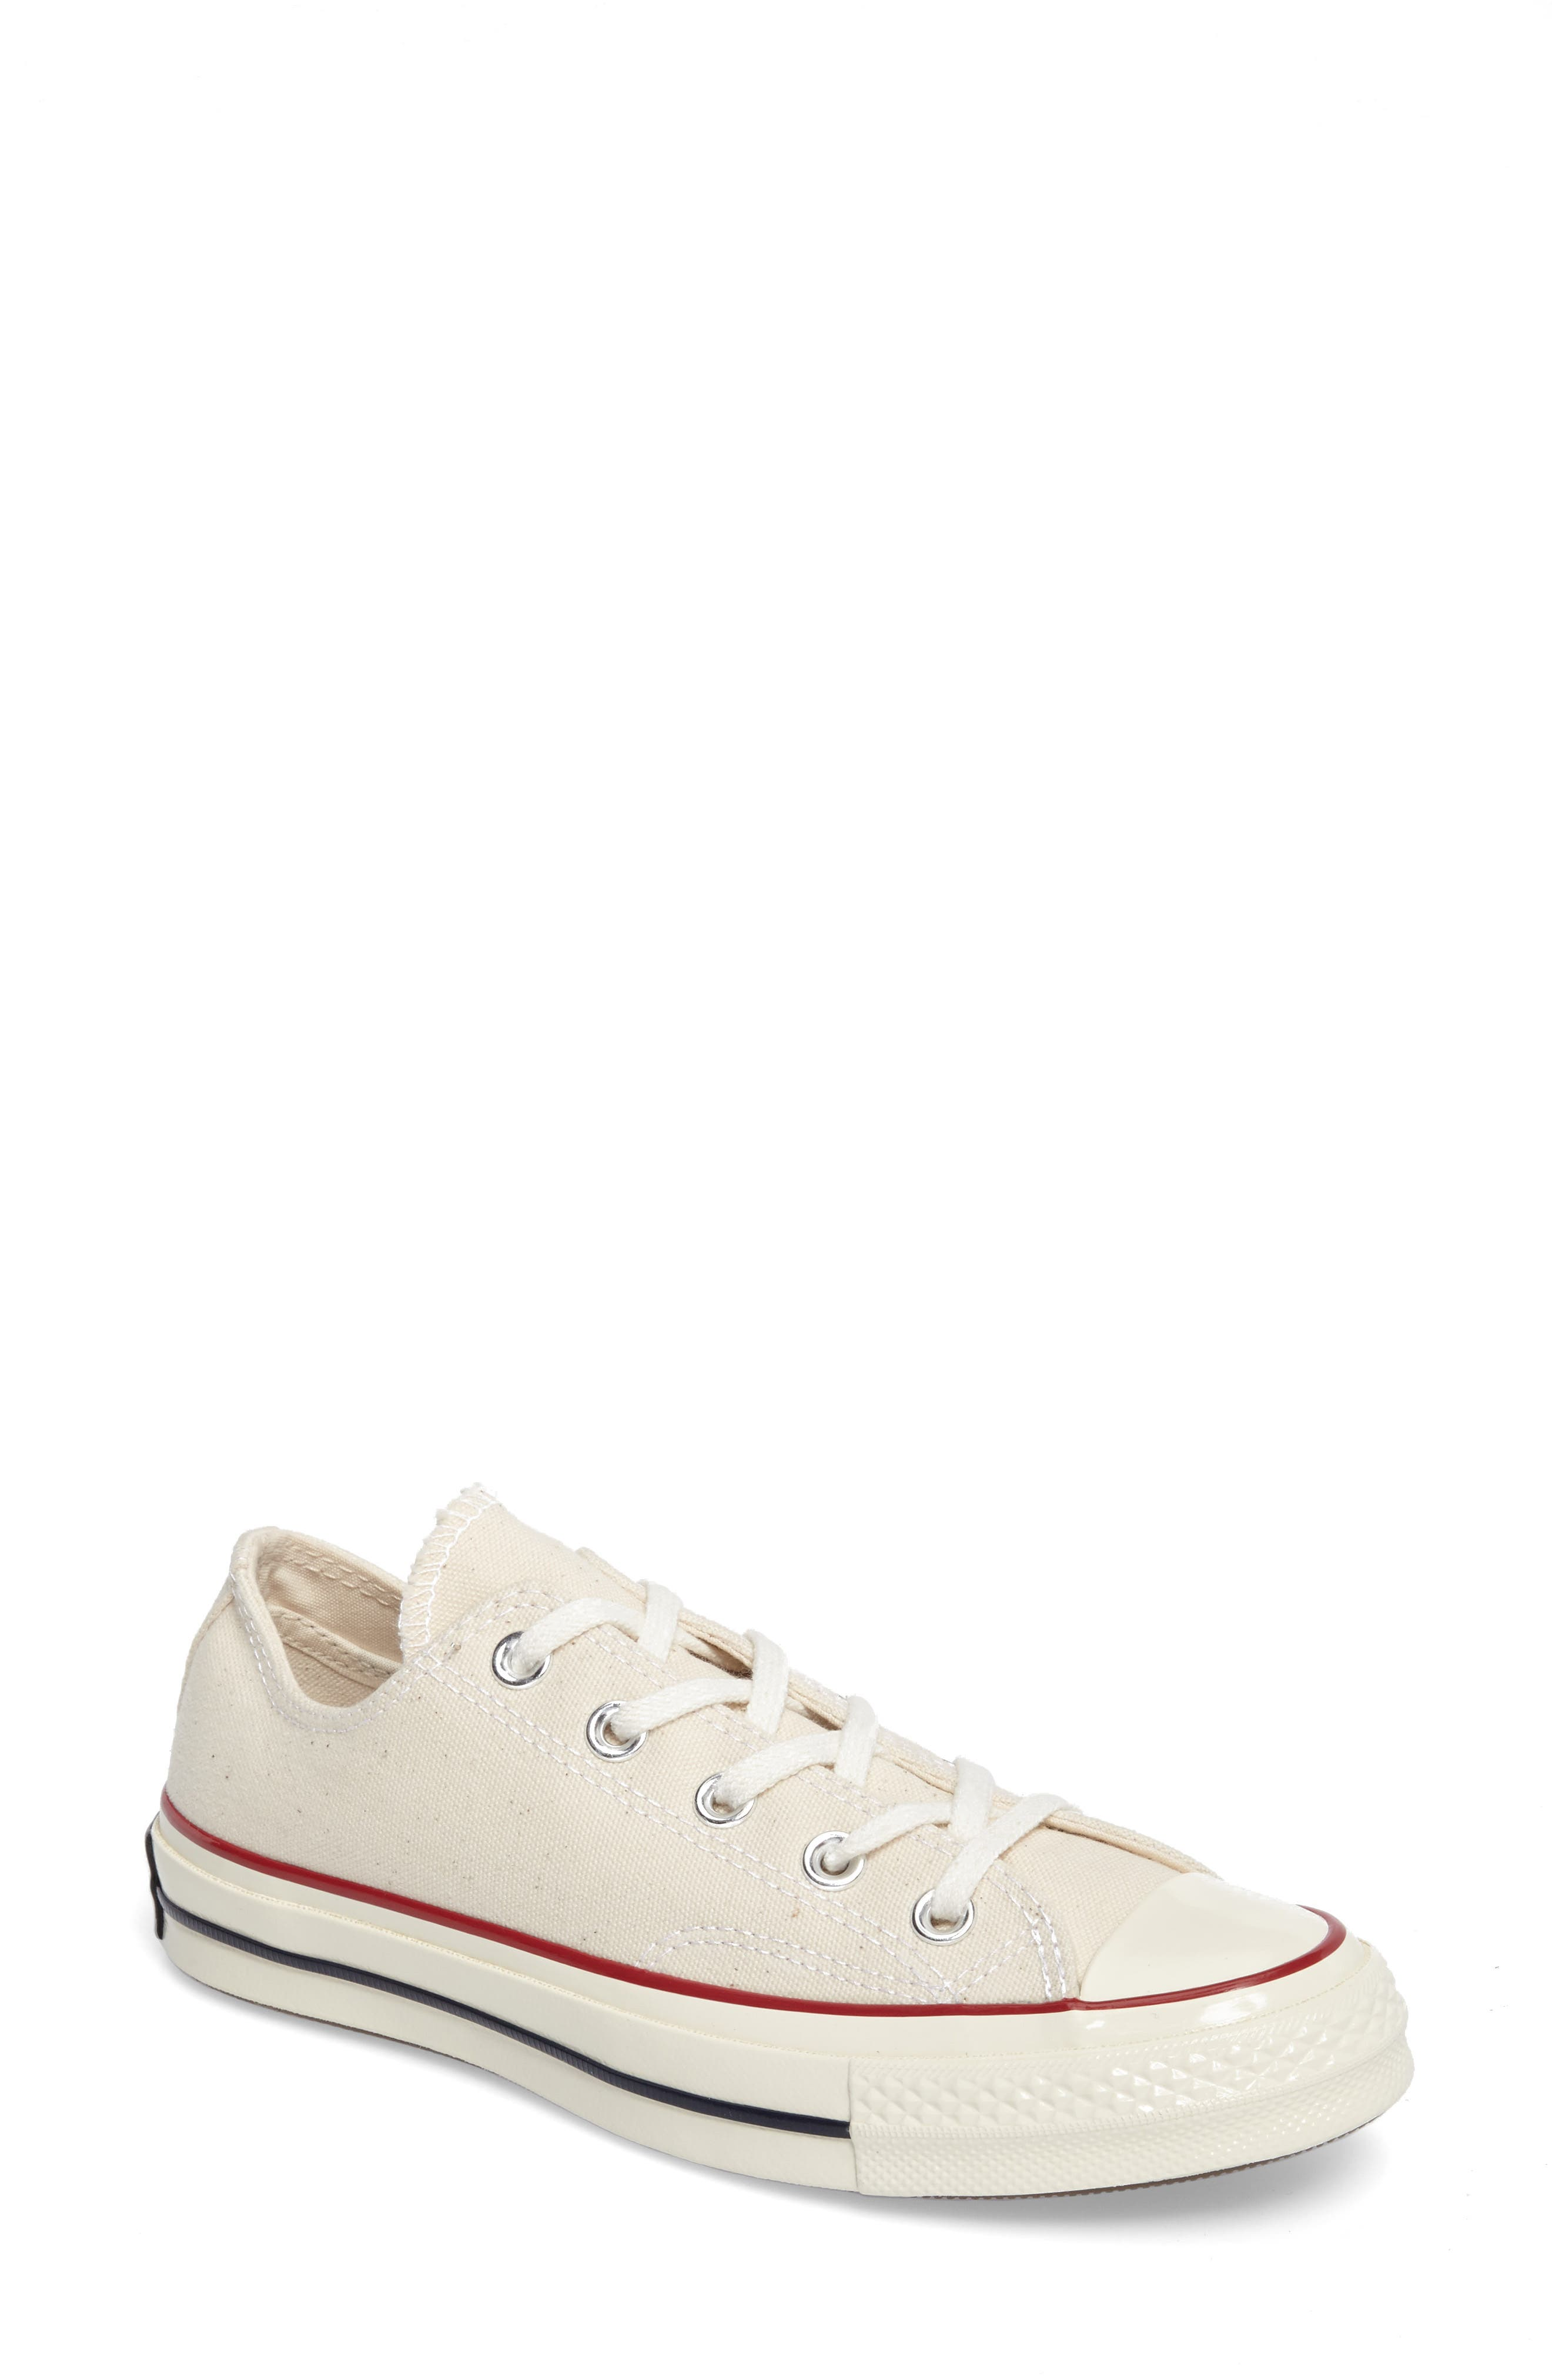 Chuck Taylor<sup>®</sup> All Star<sup>®</sup> Ox Low Top Sneaker,                         Main,                         color, PARCHMENT